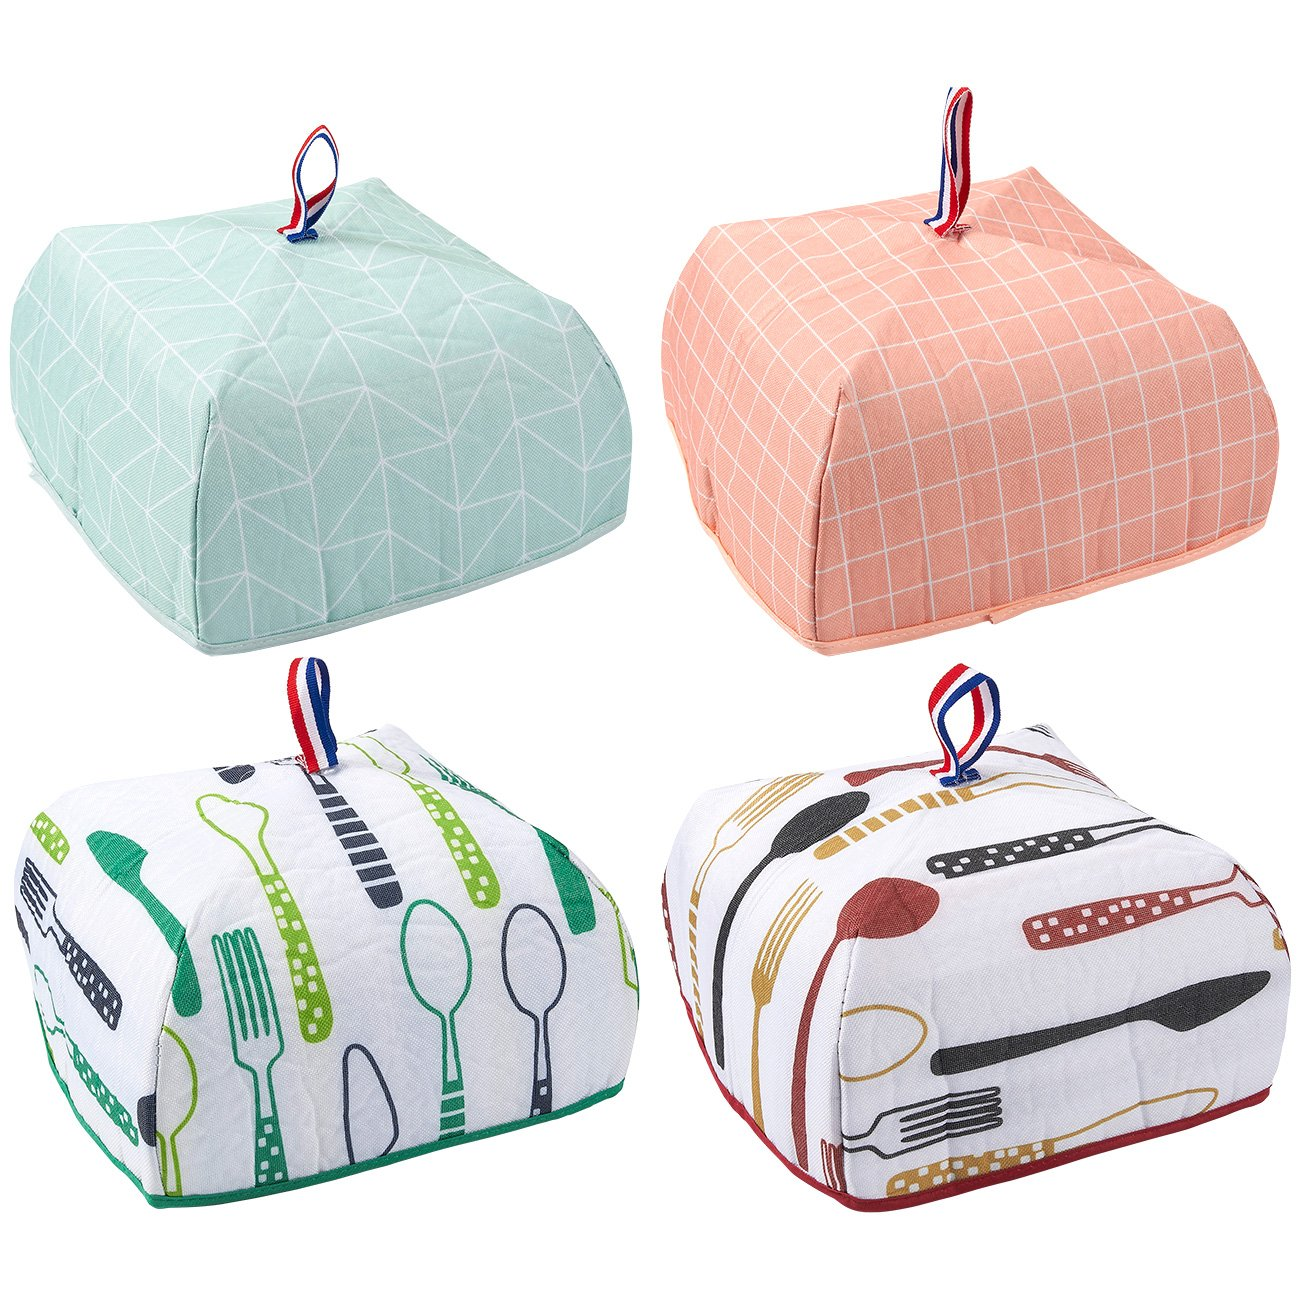 4-Pack Food Cover - Portable Thermal Pop-Up Food Cover, Small Collapsible Food Tent, 4 Designs, 9.5 x 5.5 x 9.5 Inches Juvale